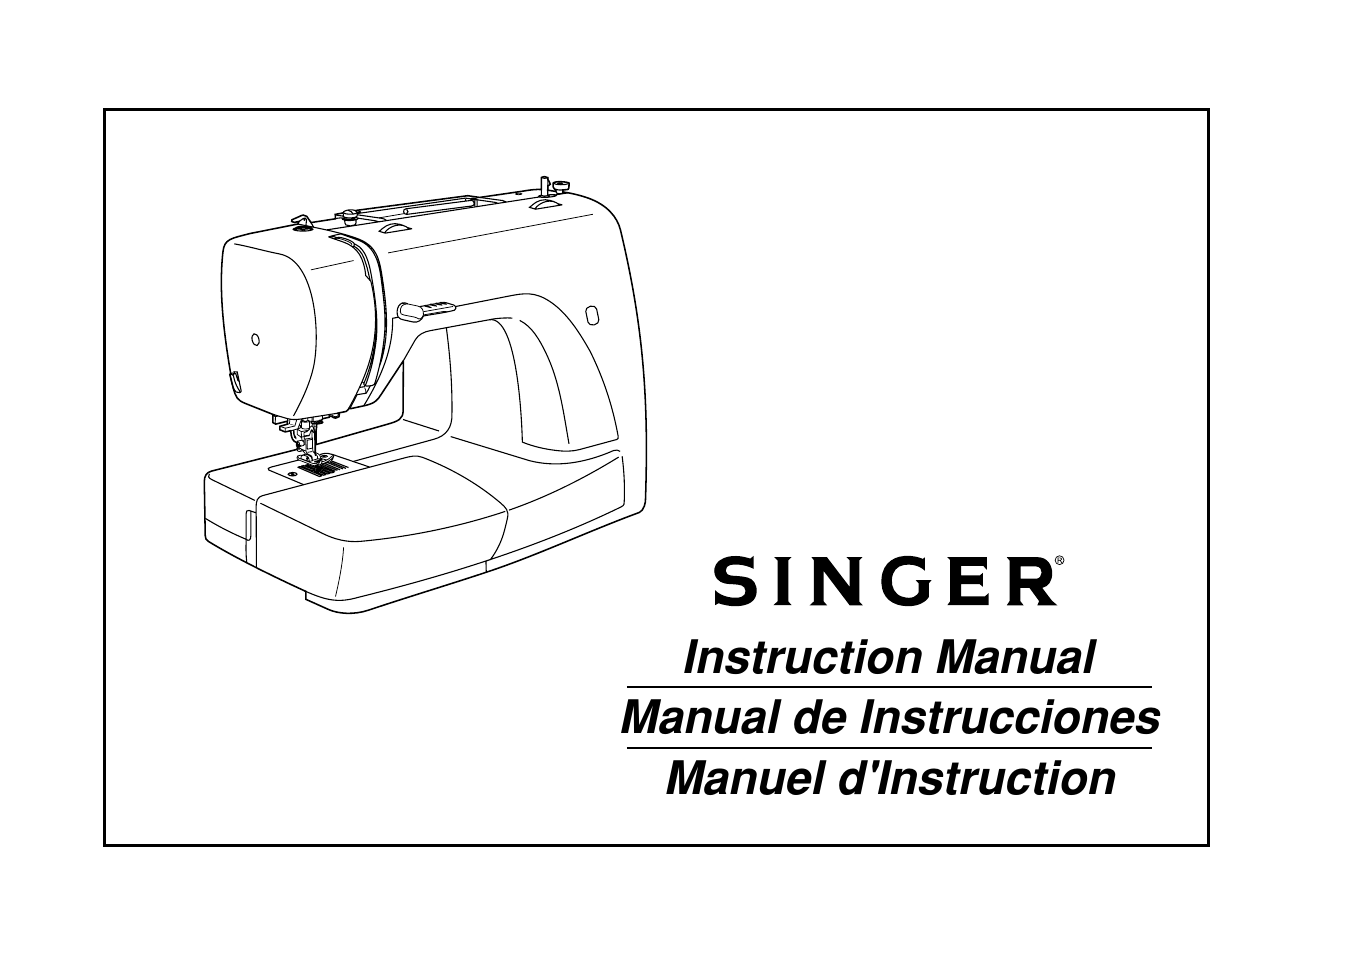 singer simple 3116 user manual 94 pages samsung user manuals pdf samsung user manuals for tv